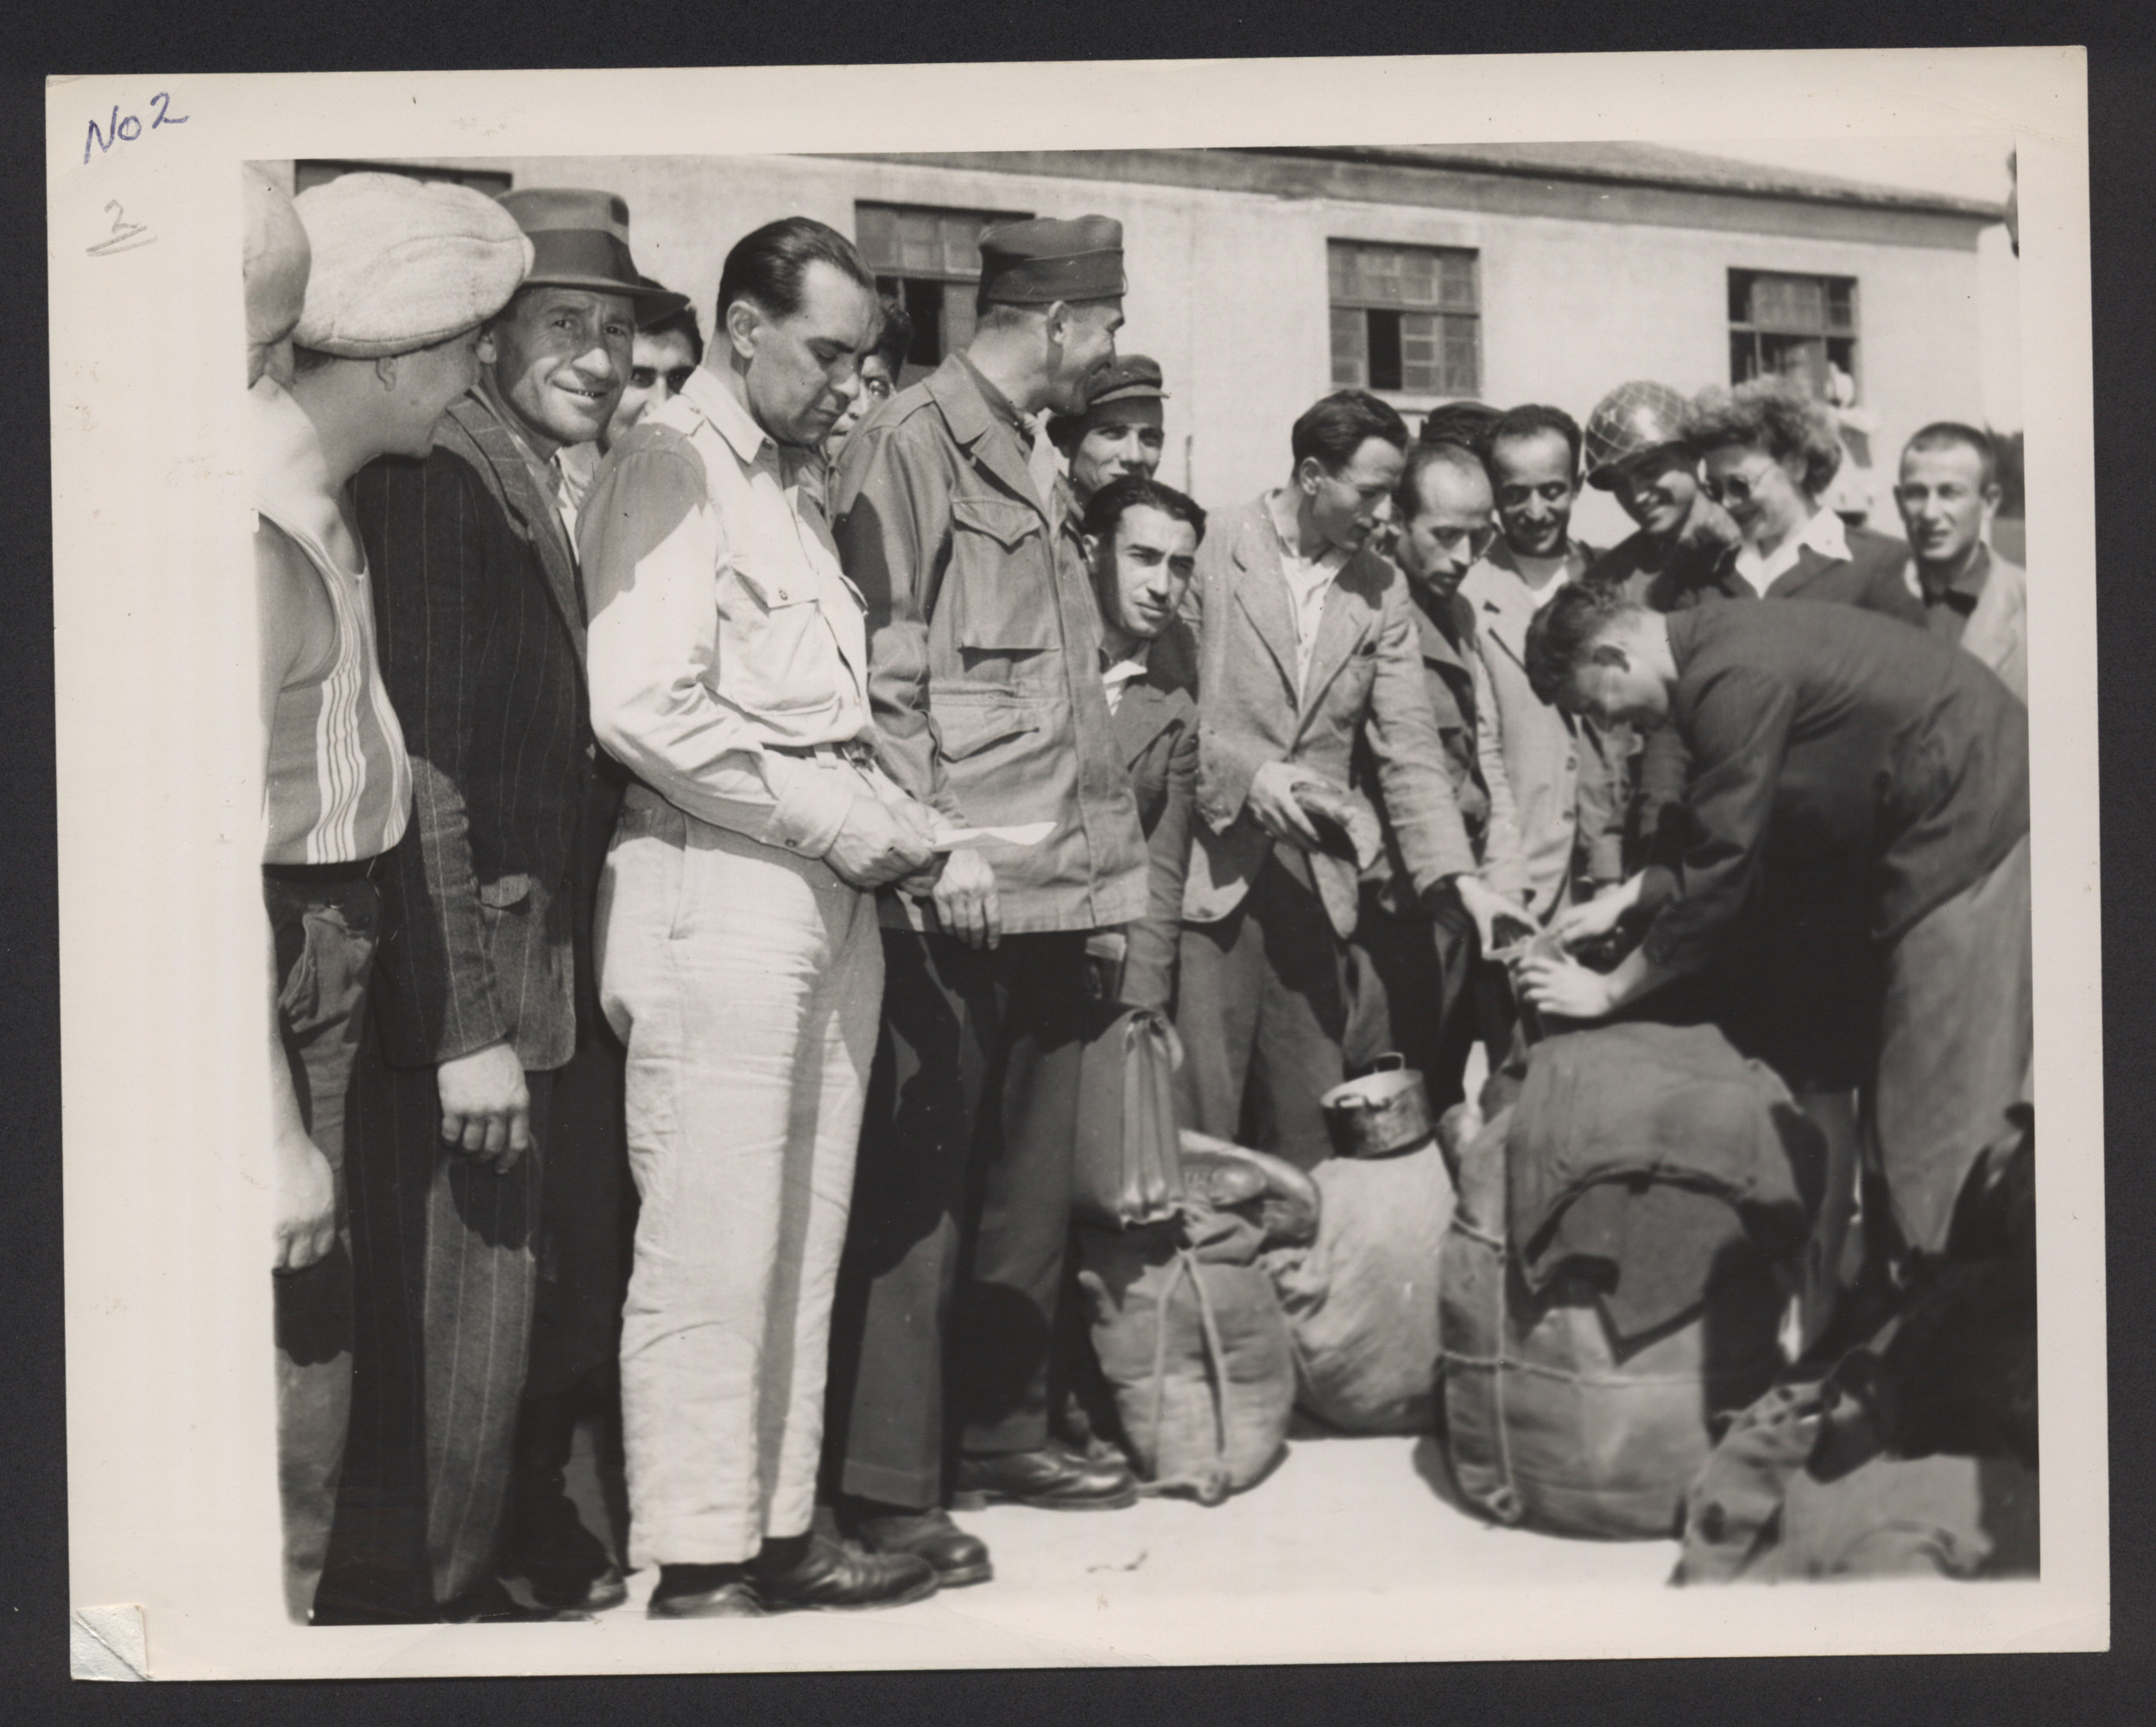 American soldiers pose with Jewish DPs with packed bundles who are either arriving or leaving a DP camp [probably Bad Gastein].